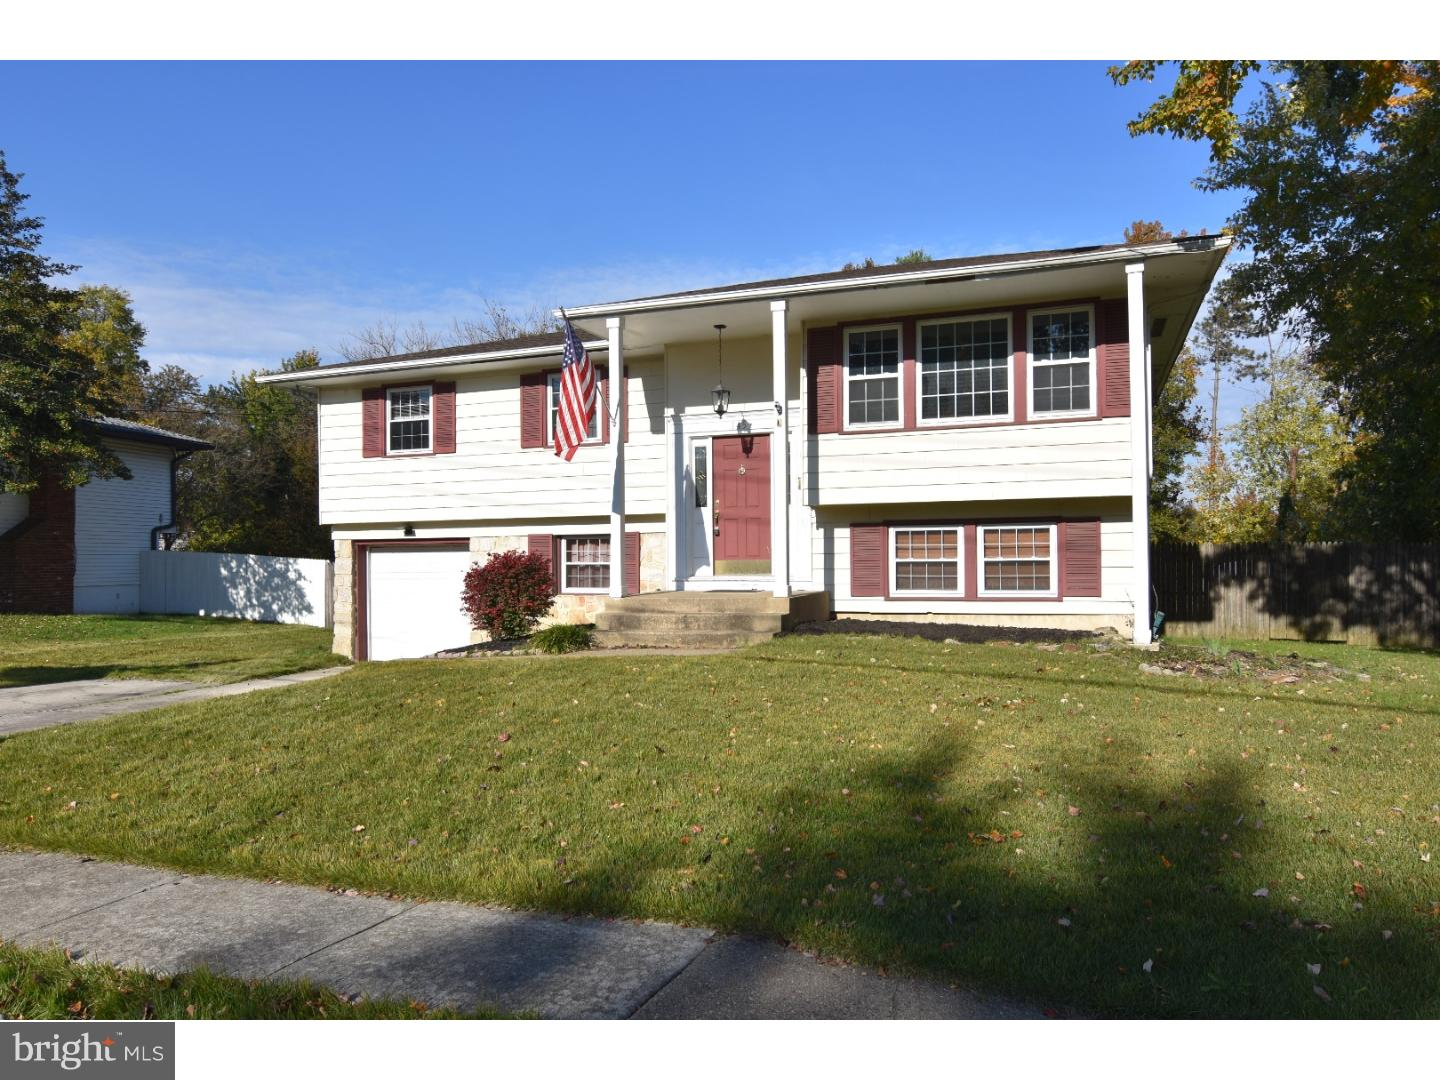 145 CENTRAL AVENUE, WOODBURY HEIGHTS, NJ 08097